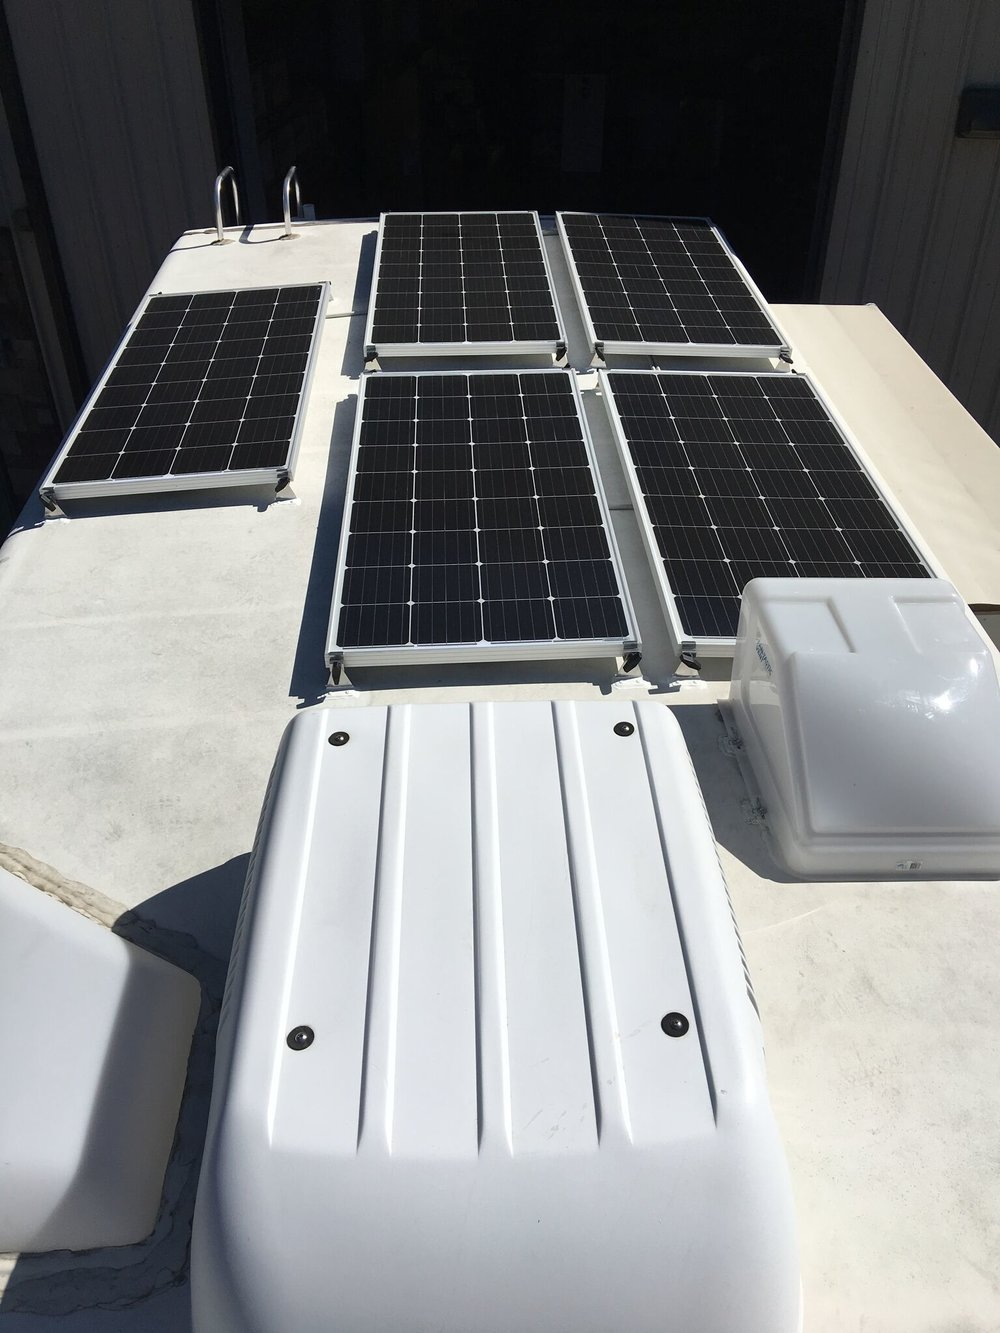 Solar Panel Installation For Rvs Trailers Am Progressive Dynamics Converter Wiring Diagram Equipment Added 5x Sf180 Kits 1x Roof Combiner Box Victron Bluesolar Smart